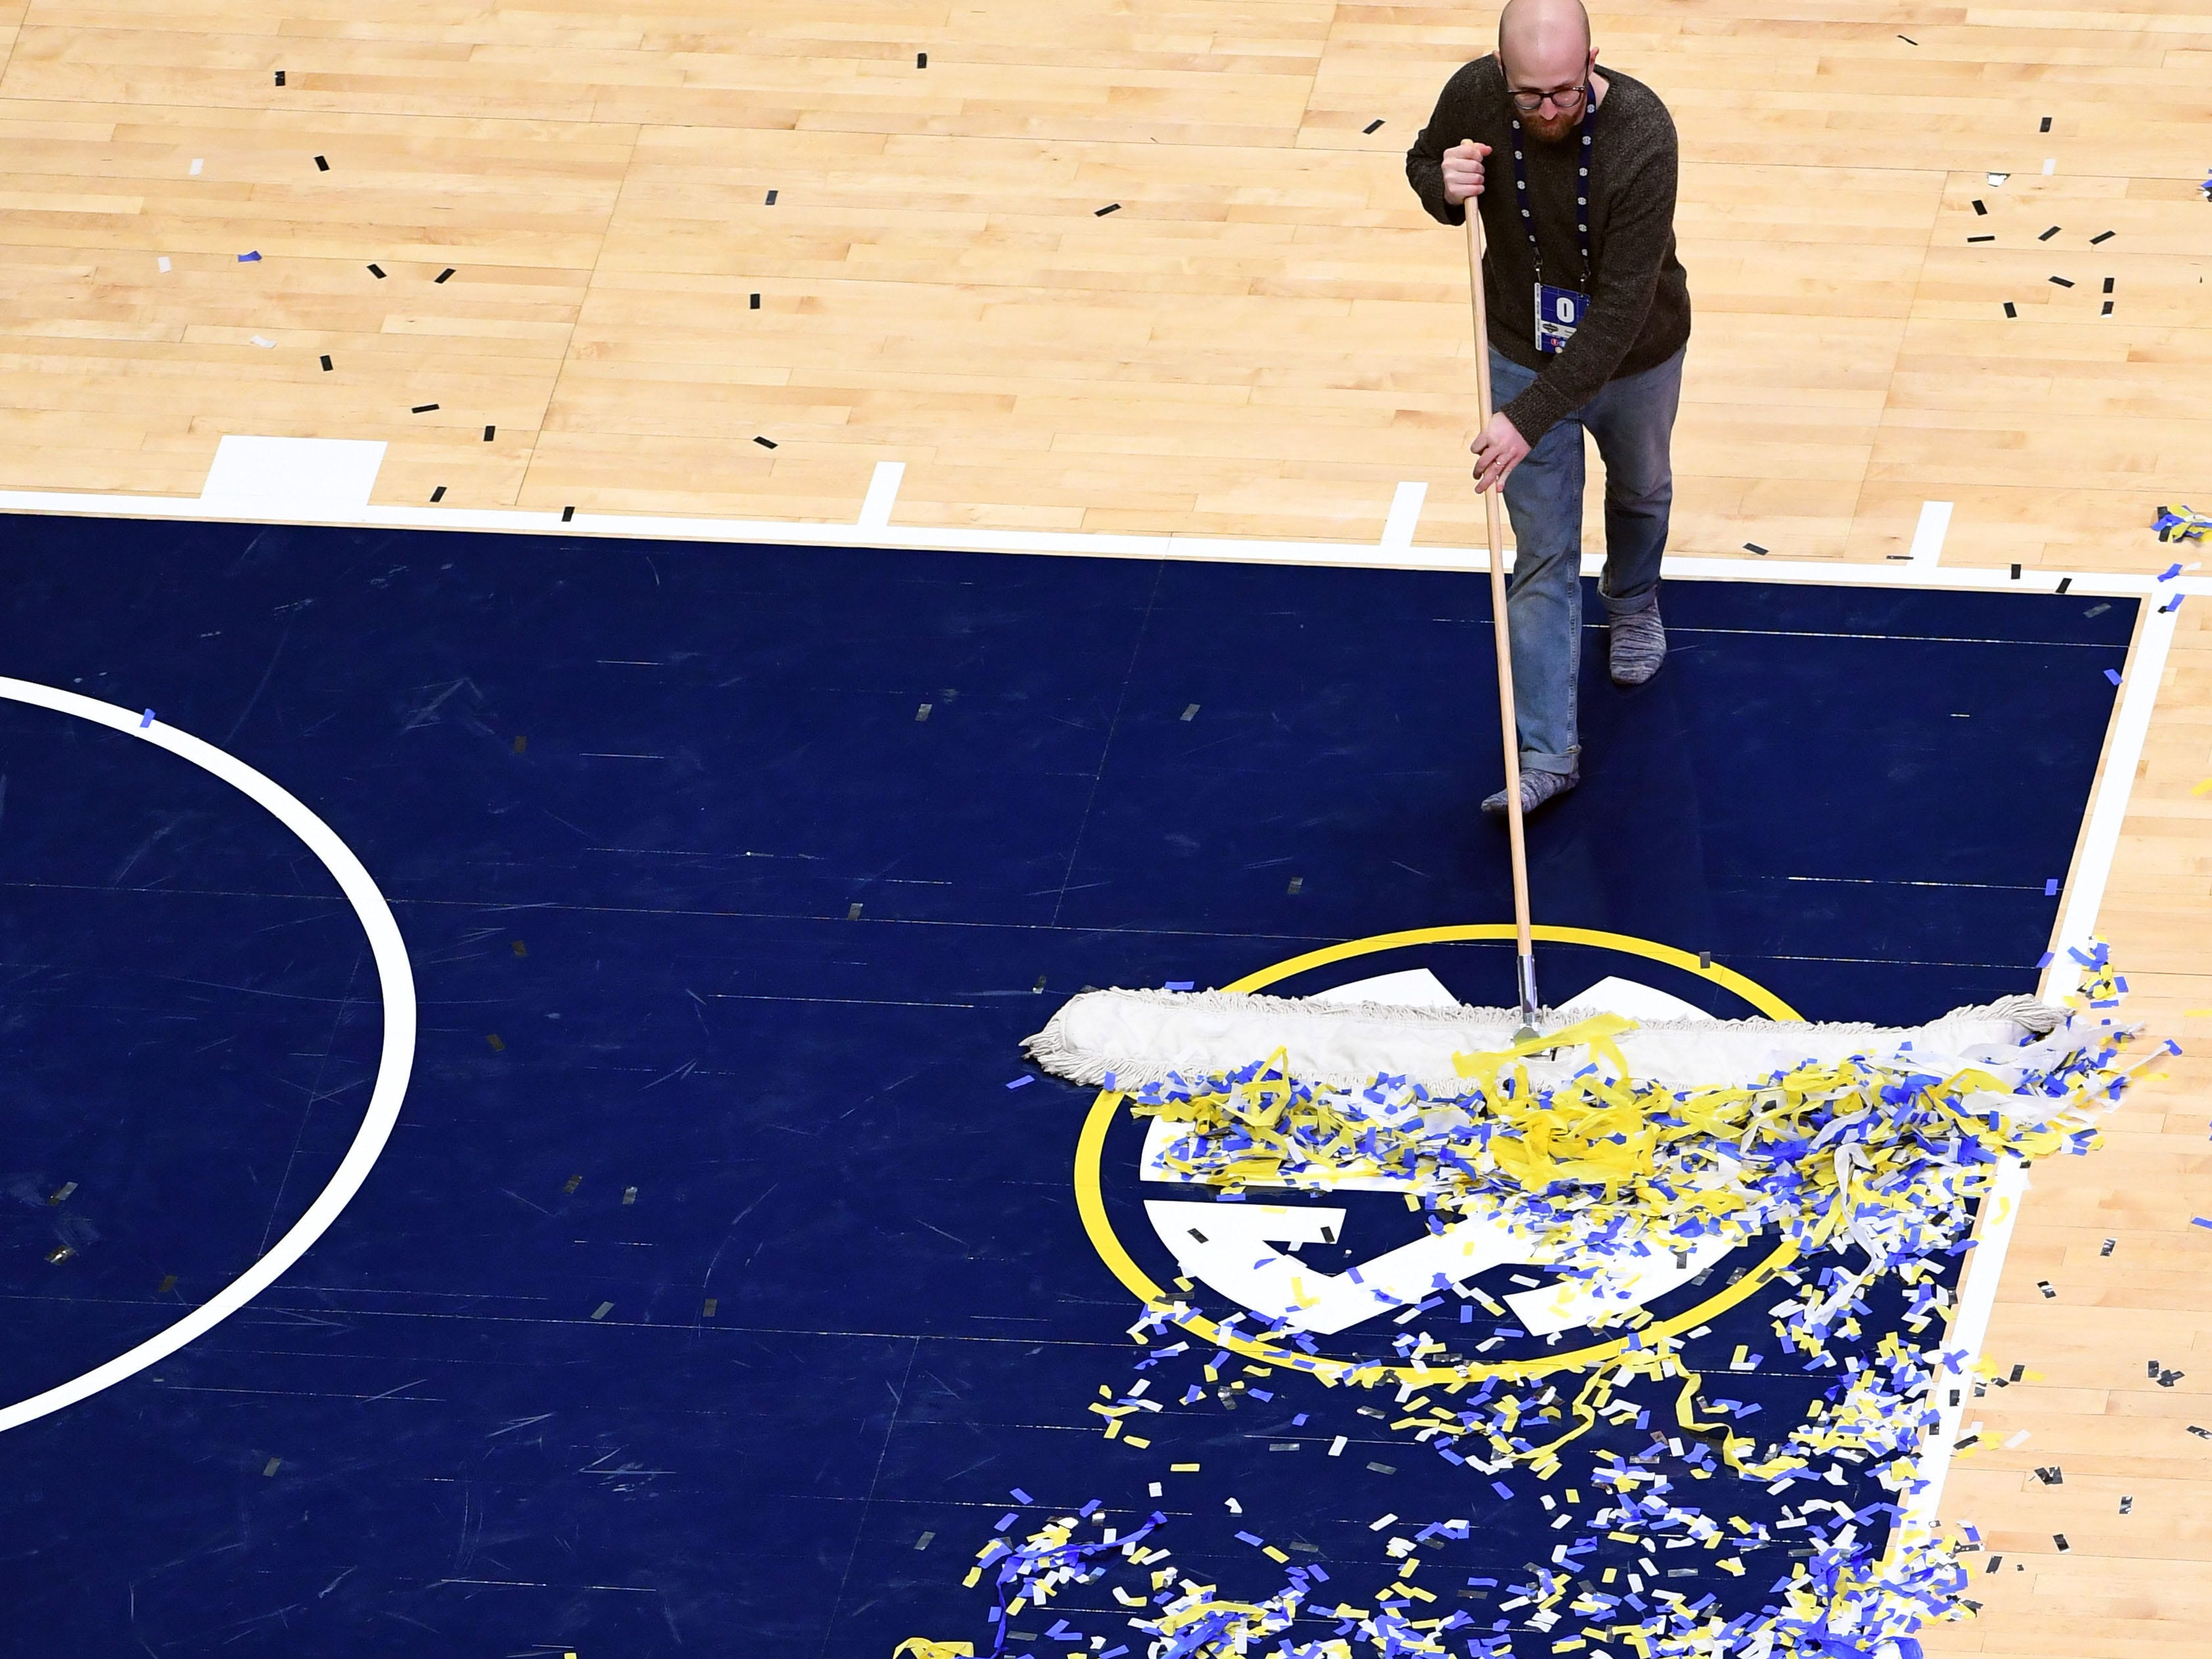 Mar 17, 2019; Nashville, TN, USA; A member of the Bridgestone Arena crew sweeps confetti off the court after a win by the Auburn Tigers over the Tennessee Volunteers in the SEC conference tournament championship game at Bridgestone Arena. Mandatory Credit: Christopher Hanewinckel-USA TODAY Sports